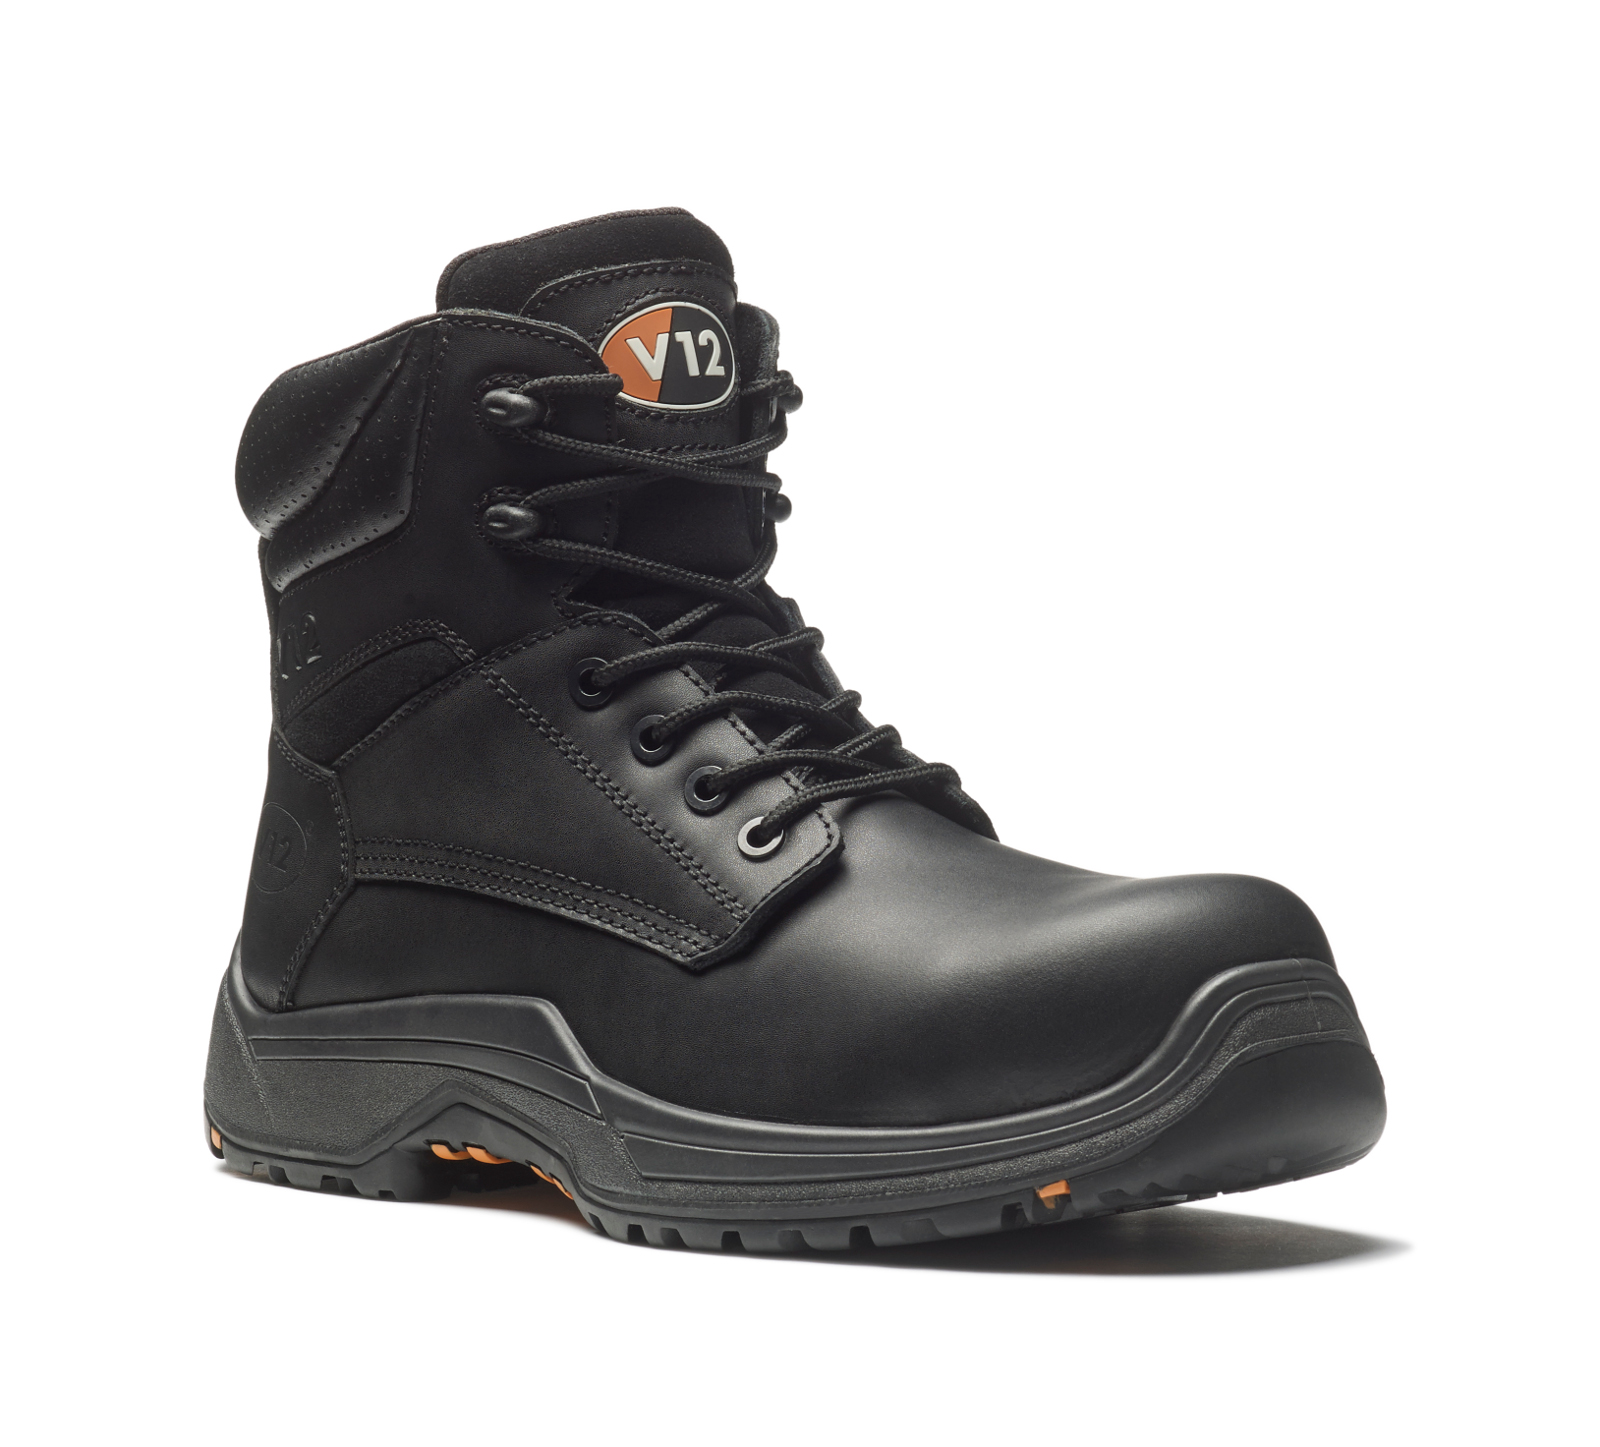 0d80066ce35 V12 VR600.01 IGS Bison Men Safety Derby Boot Metal Free Black